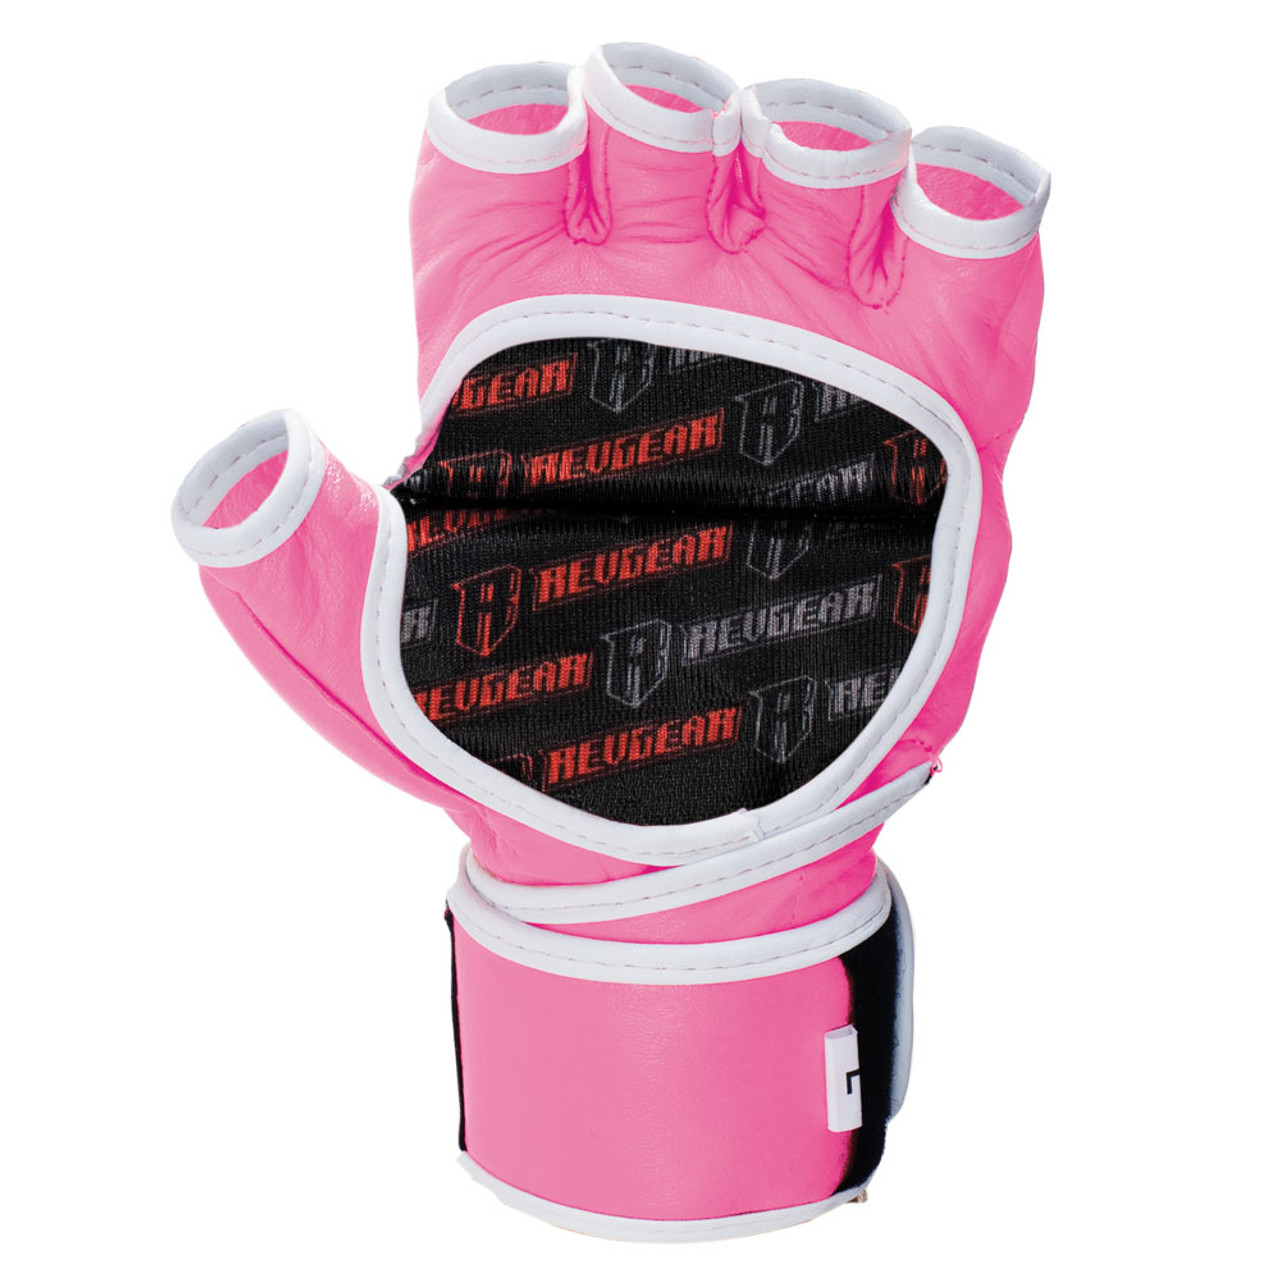 ROYAL FIGHT GEAR Details about  /MMA GLOVES REAL LEATHER MIXED MARTIAL ARTS S,M,L,XL sizes